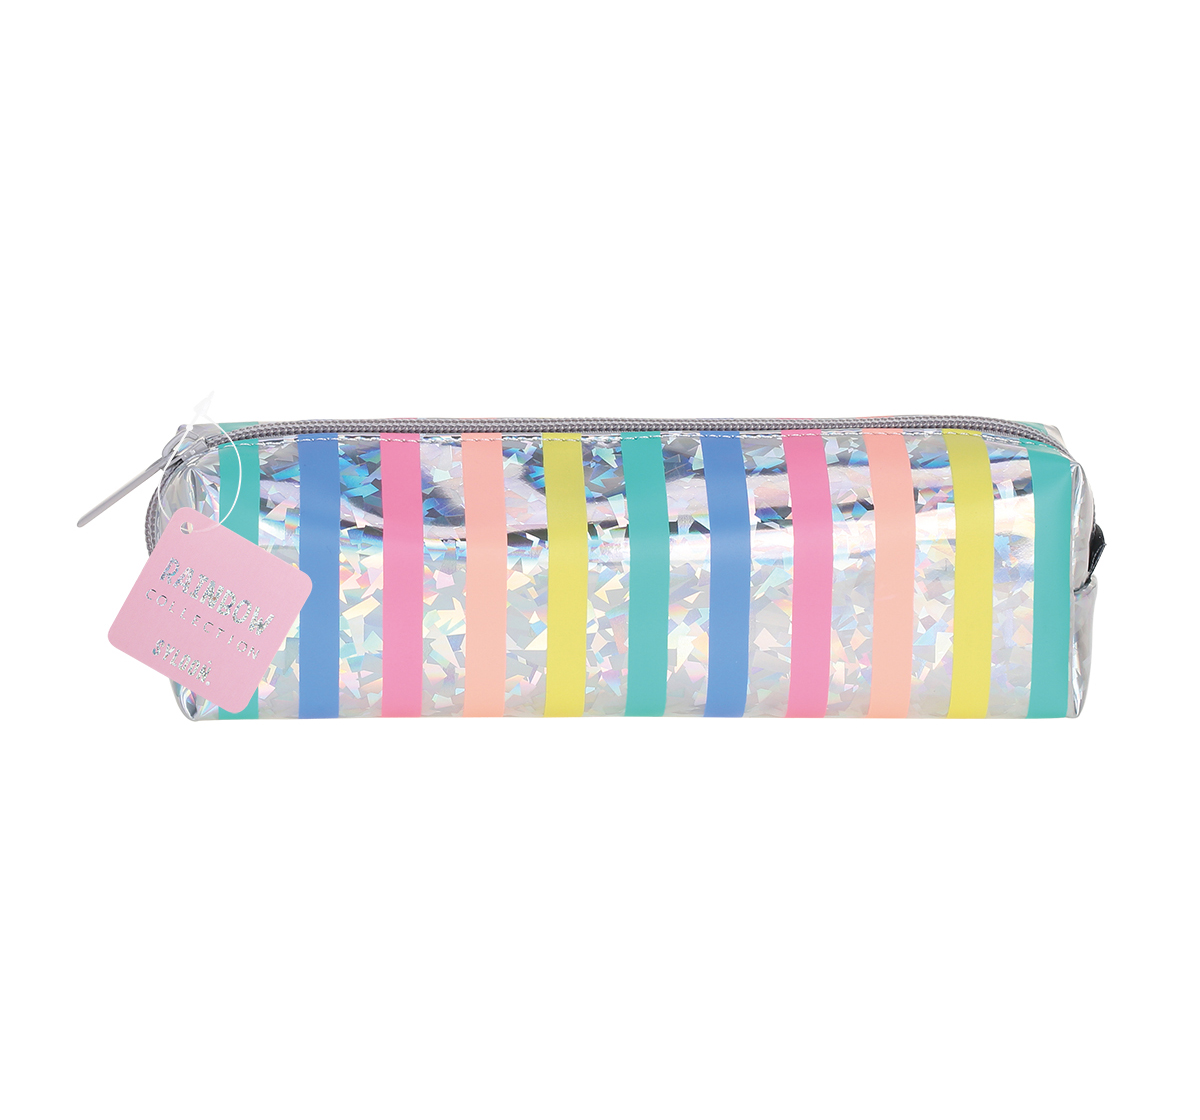 Syloon   Syloon Rainbow - Holo Pu Pencil Pouch Pencil Pouches & Boxes for Kids age 5Y+